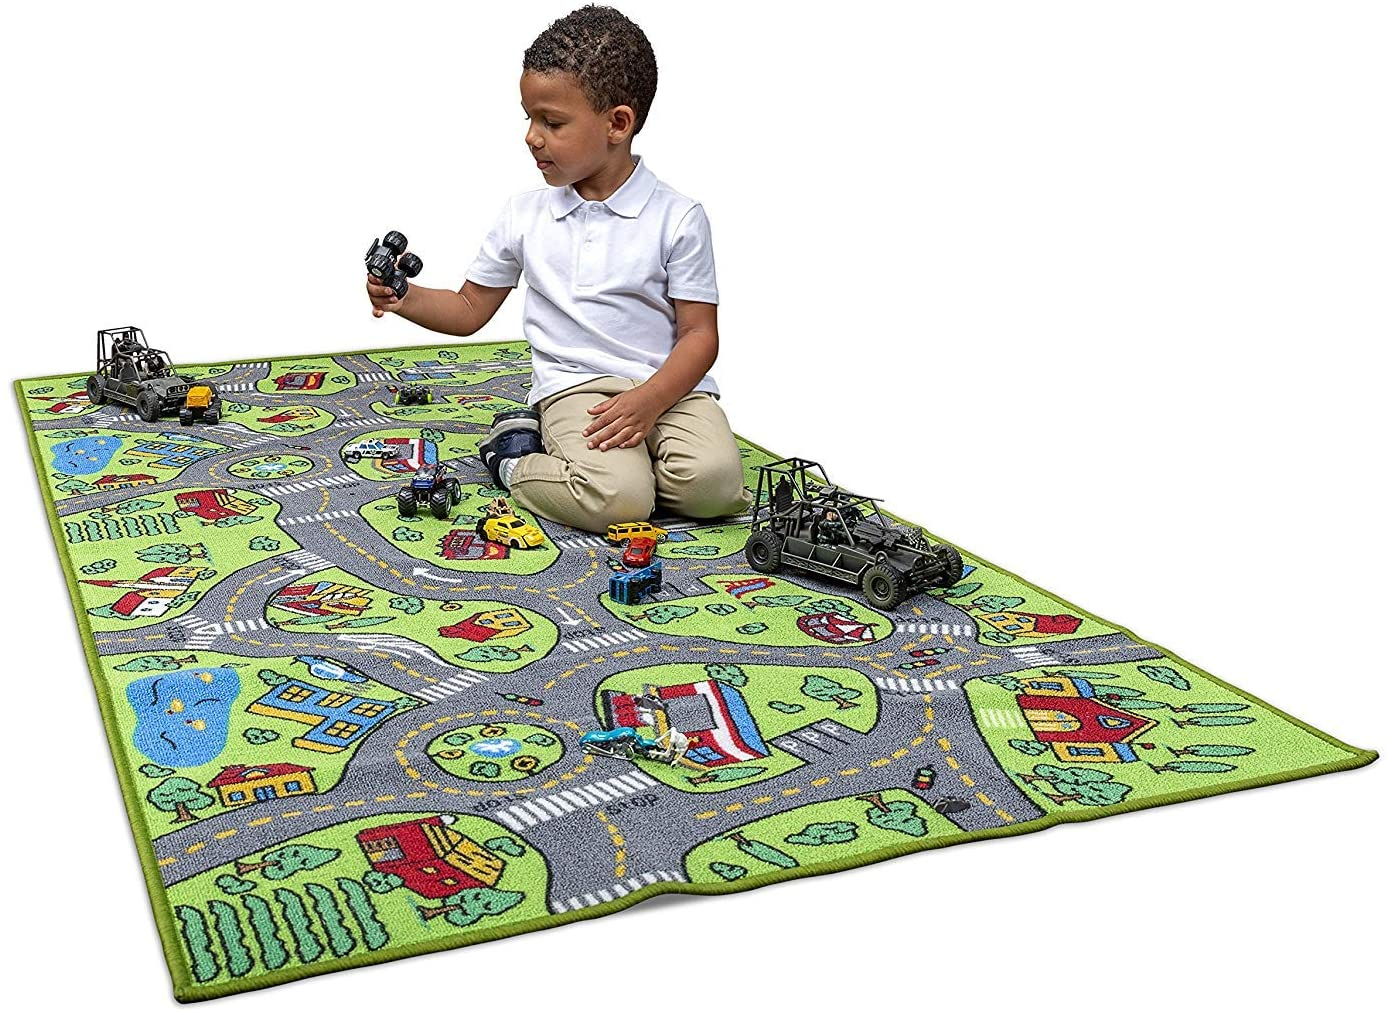 Kids Carpet Playmat City Life Extra Large Learn Have Fun Safe, Childrens Educational, Road Traffic System, Multi Color Activity Centerpiece Play Mat! Great For Playing With Cars For Bedroom Playroom